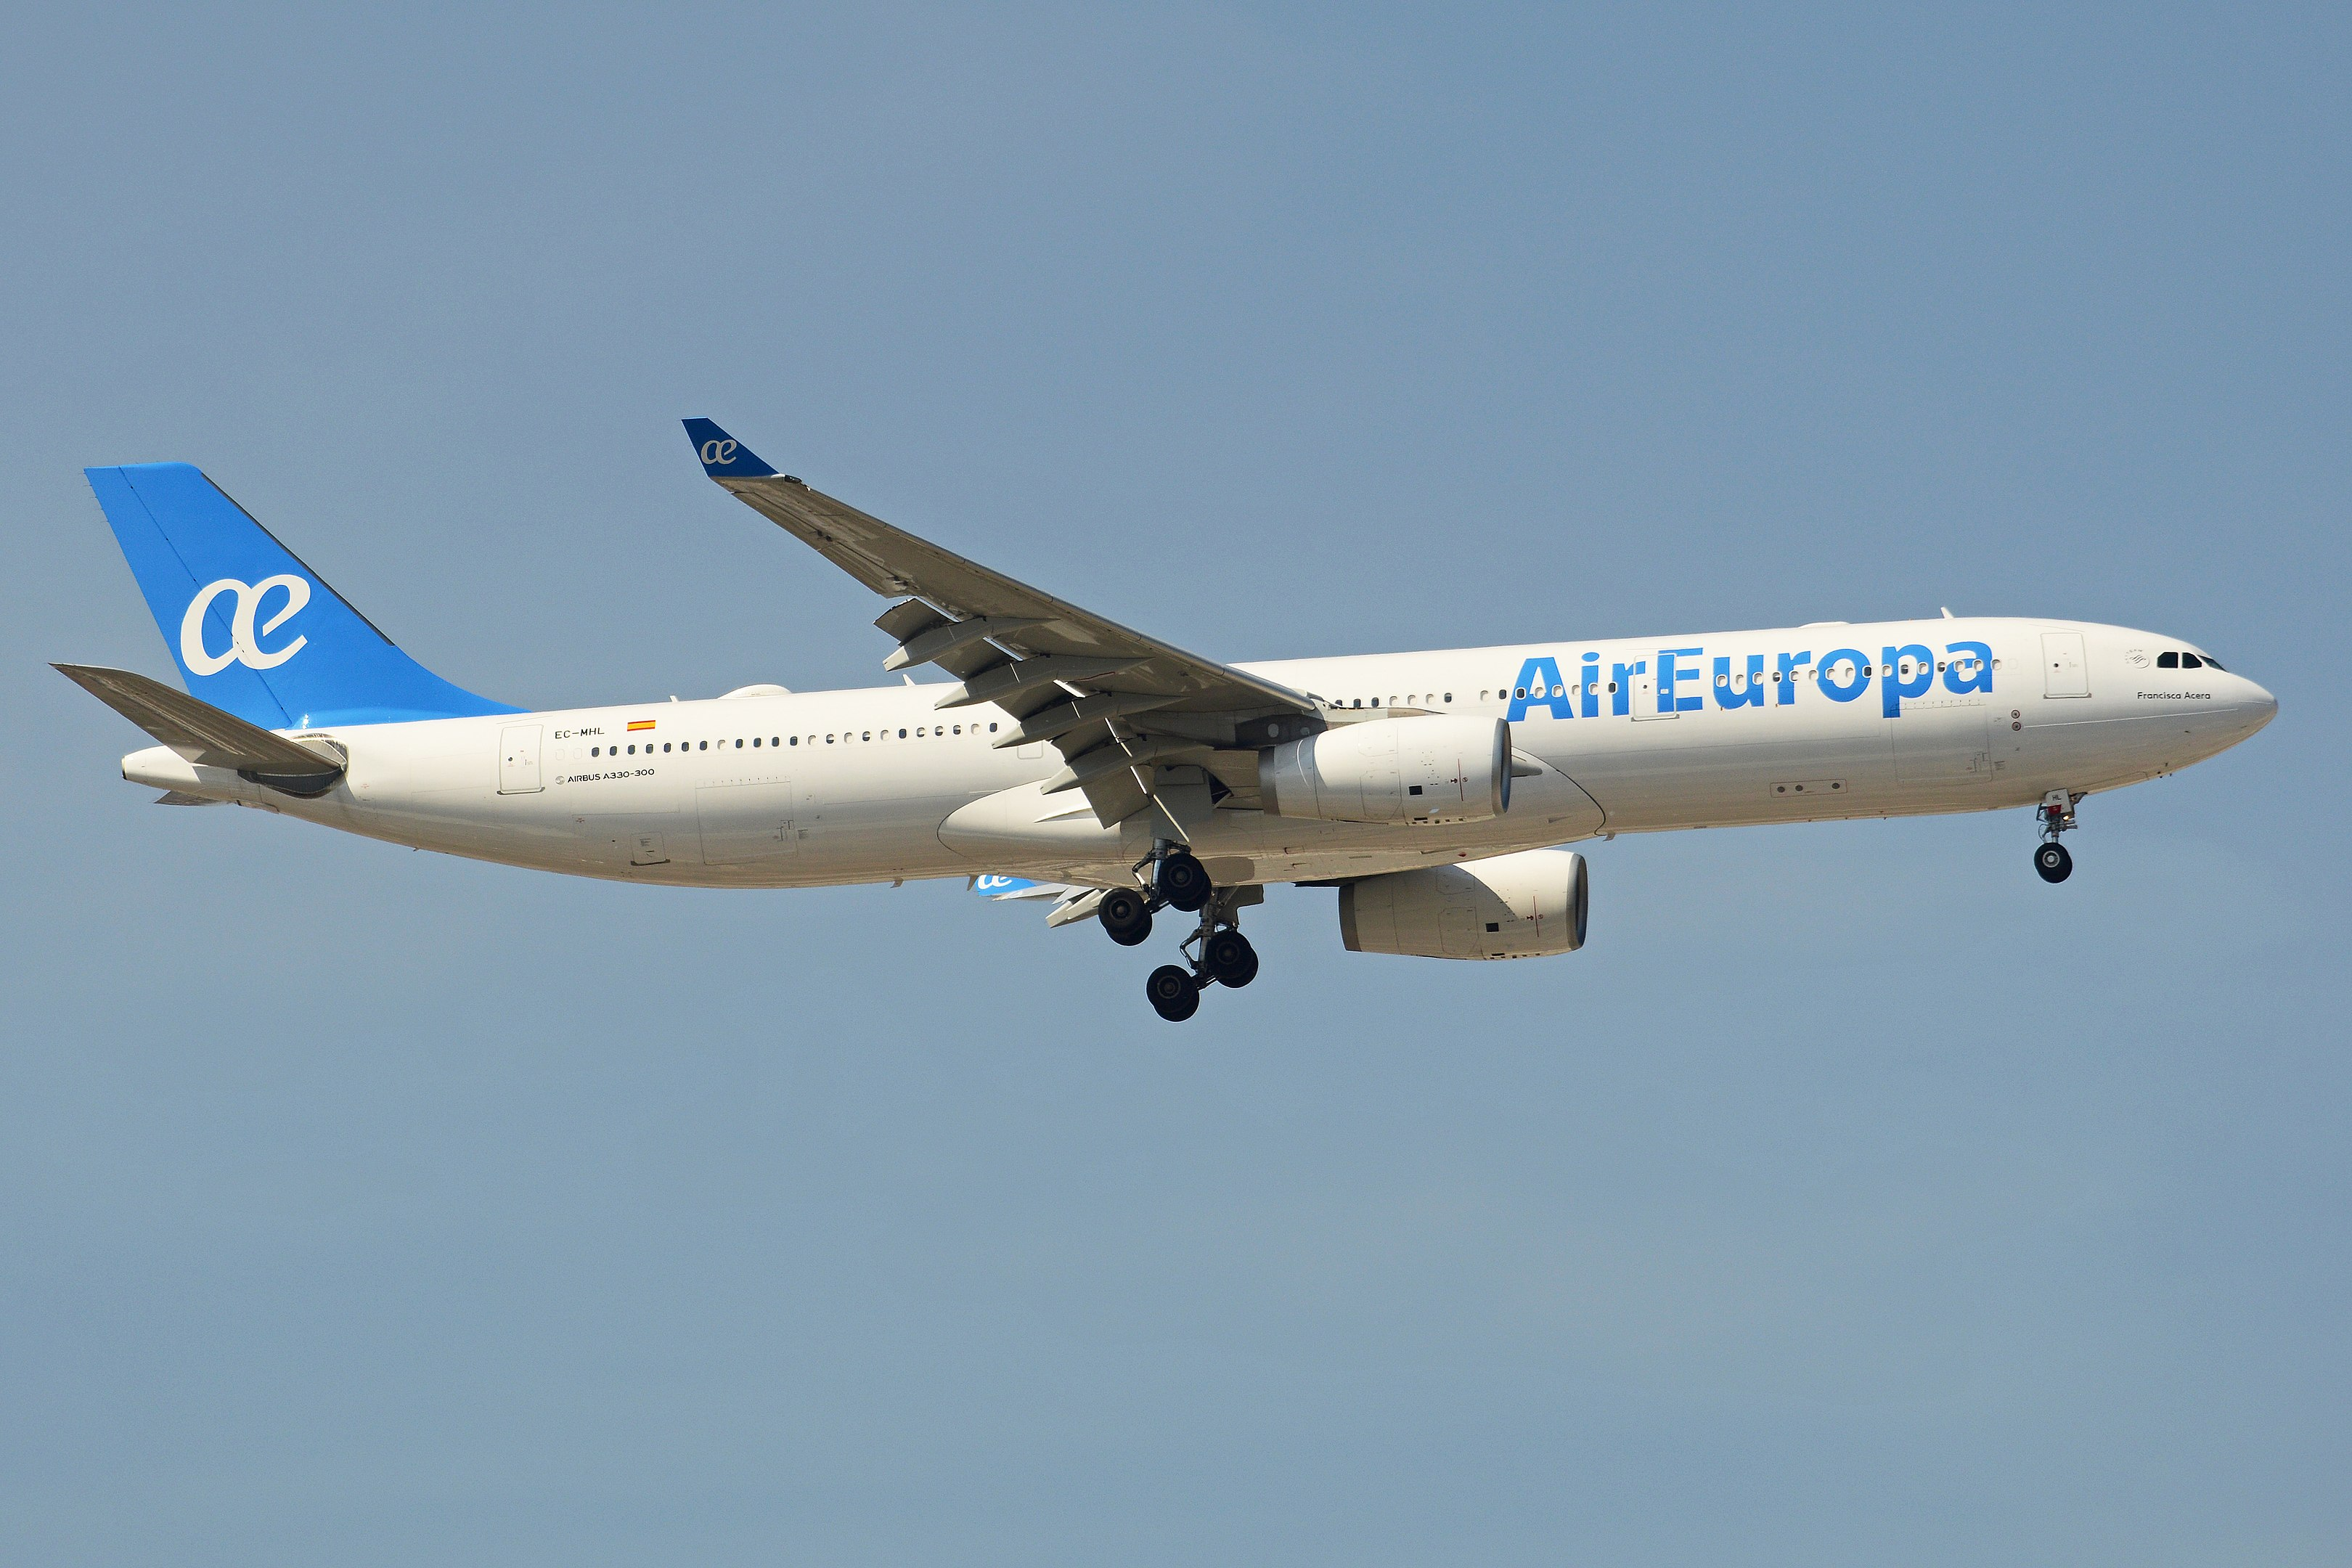 Air Europa sender de store fly til København (Foto: Alan Wilson, CC BY-SA 2.0, https://creativecommons.org/licenses/by-sa/2.0)